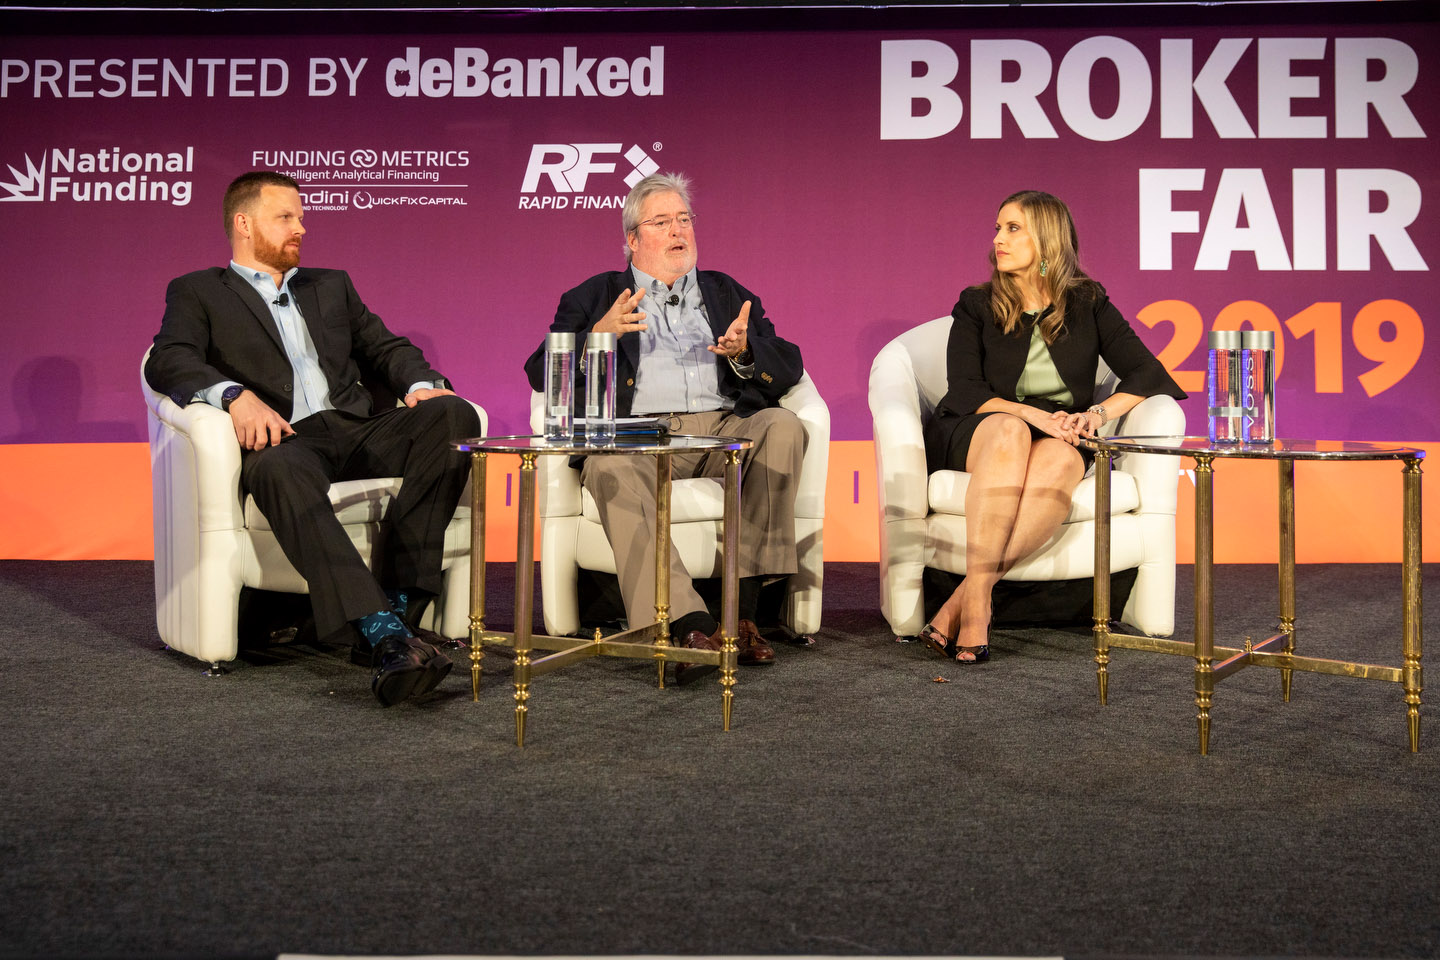 Broker Fair 2019 - Presented by deBanked - 246